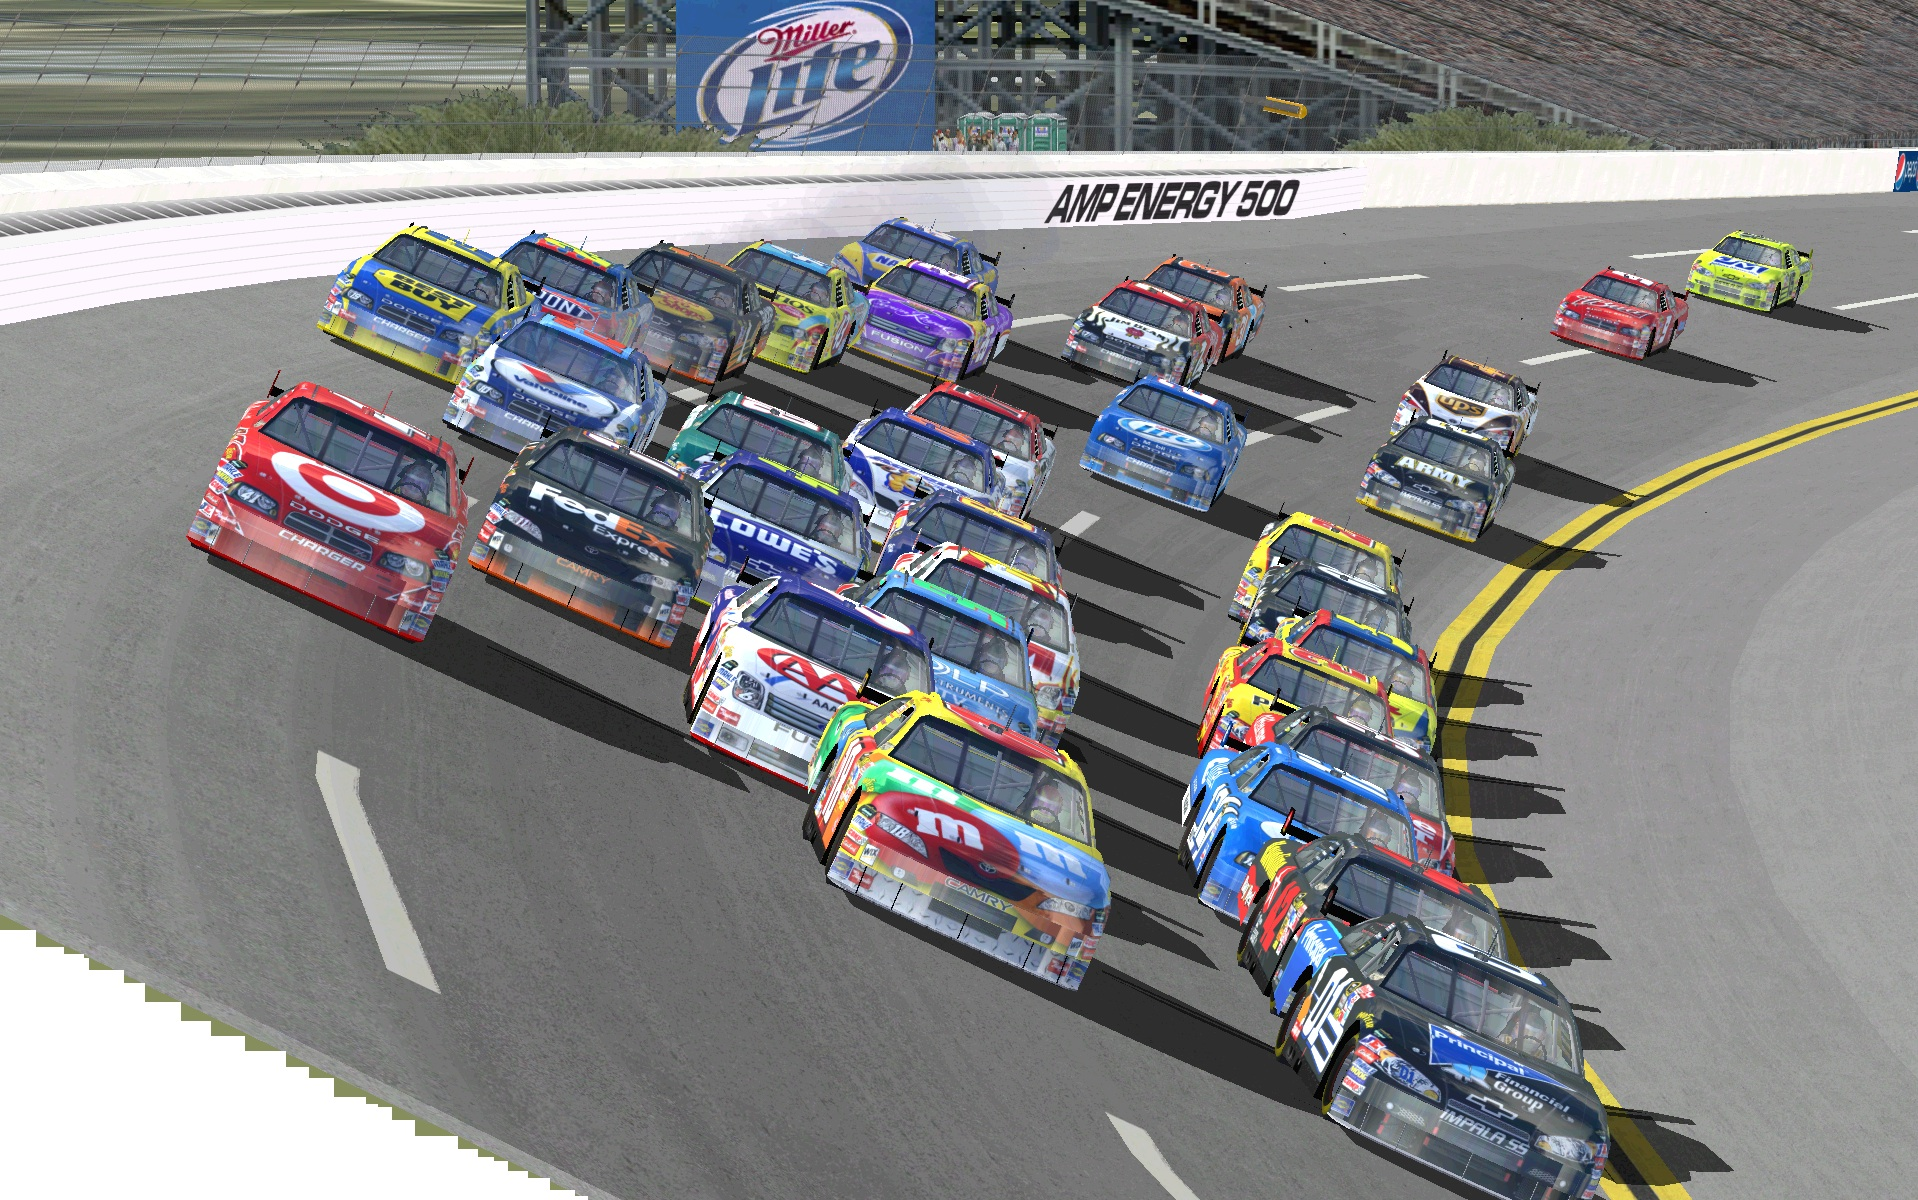 Nascar Racing Games >> Nascar Racing Games Car Release And Reviews 2018 2019